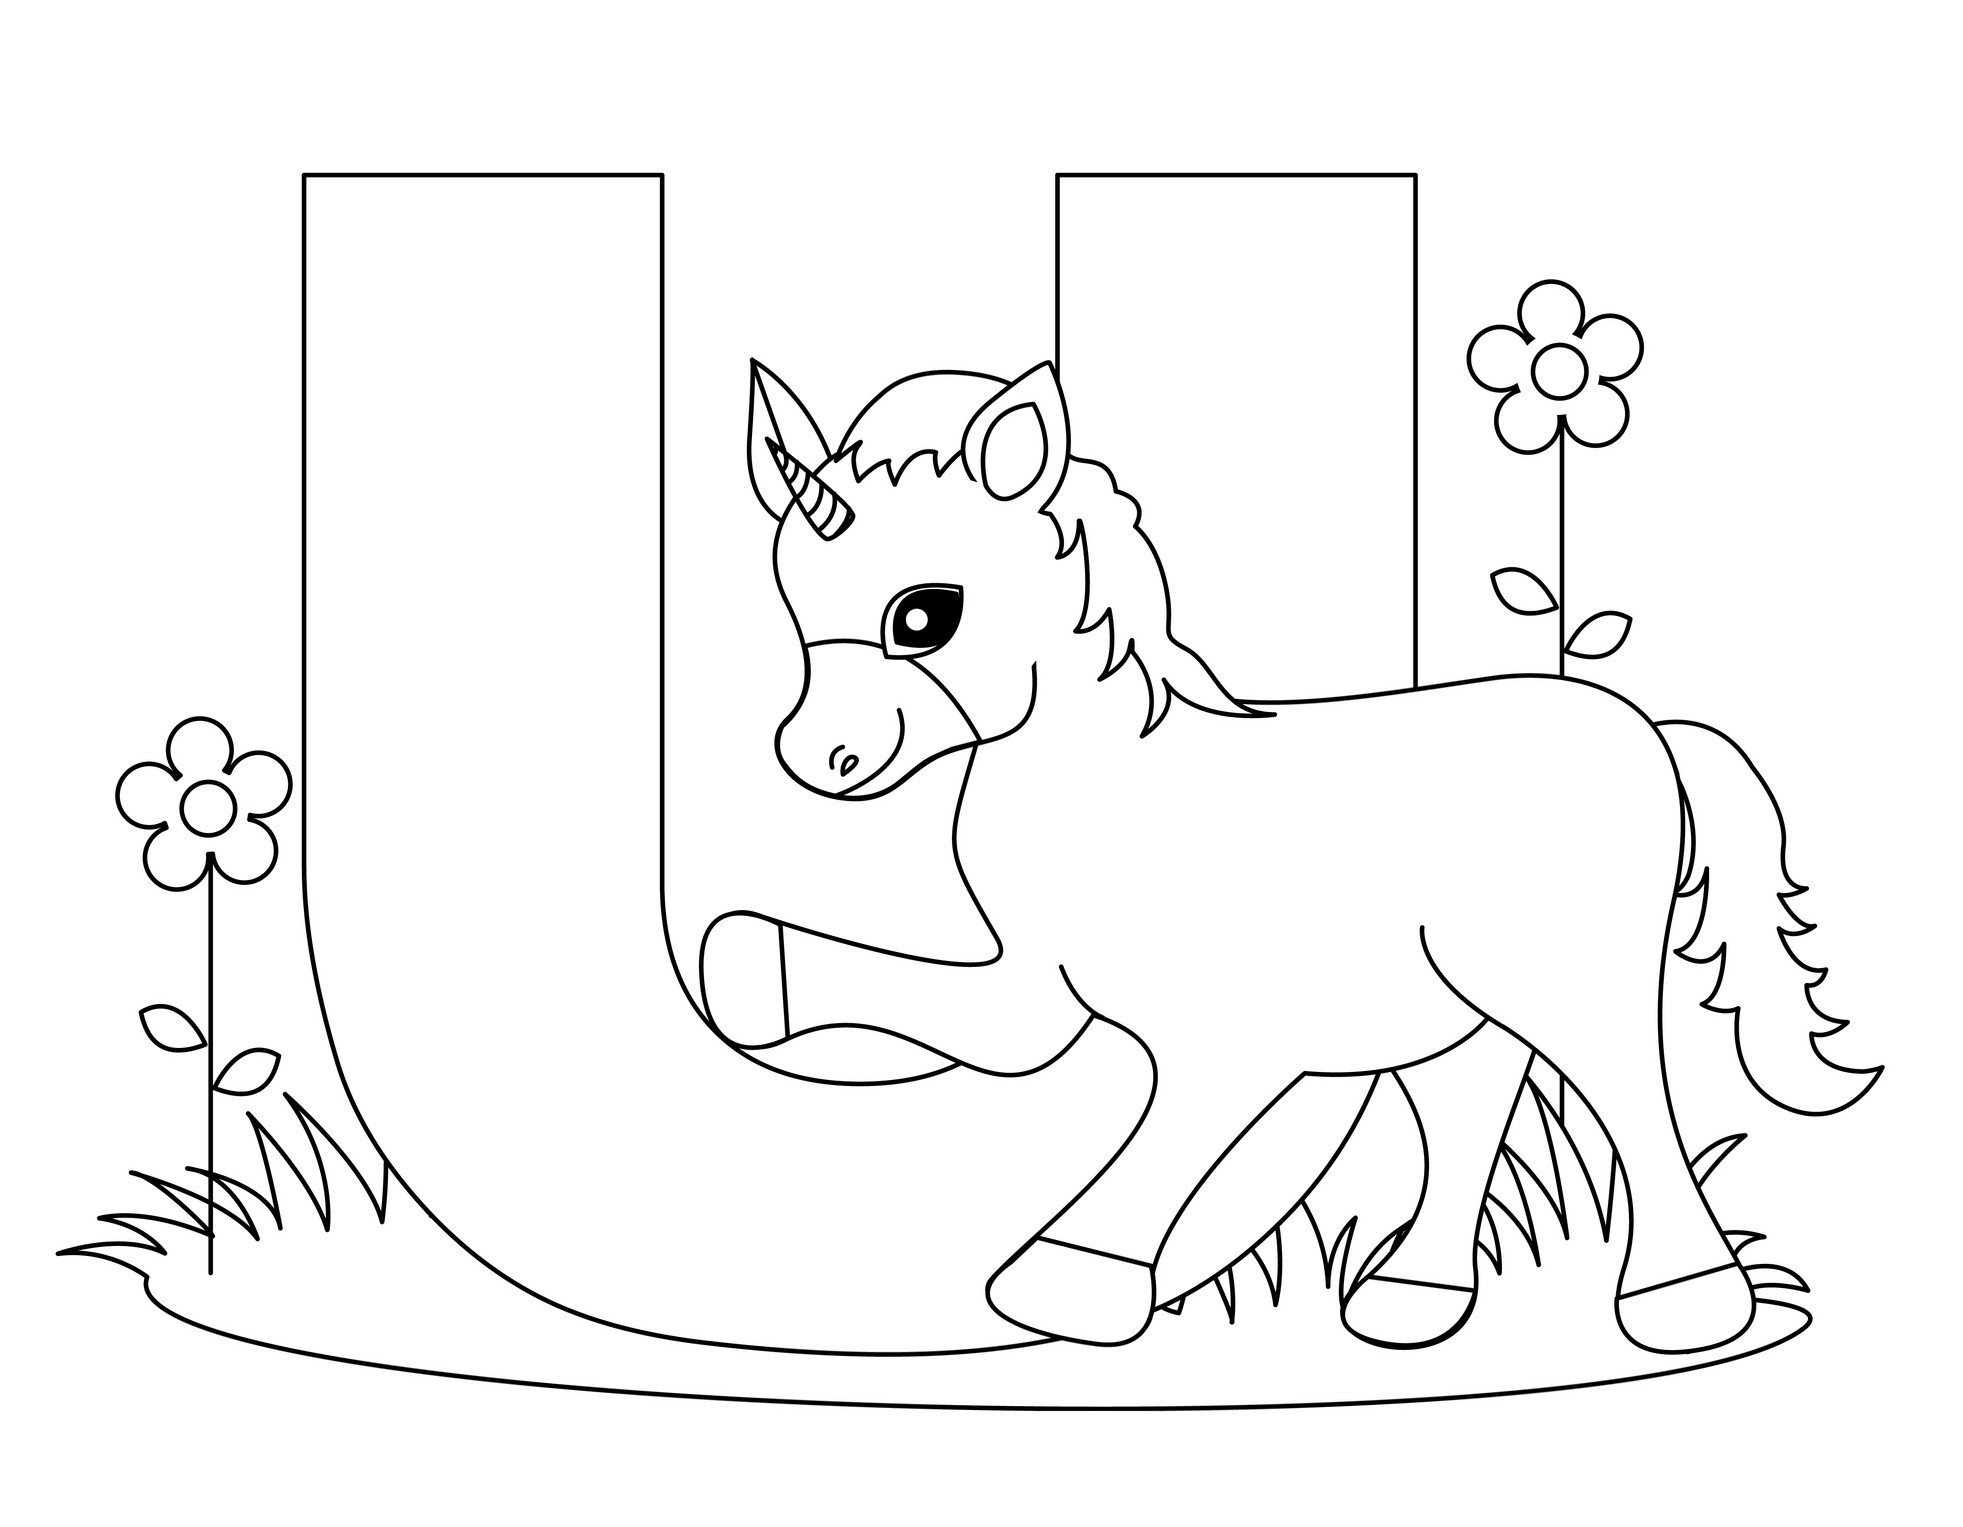 letter a coloring page fun learn free worksheets for kid ภาพระบายส abc a z letter a page coloring